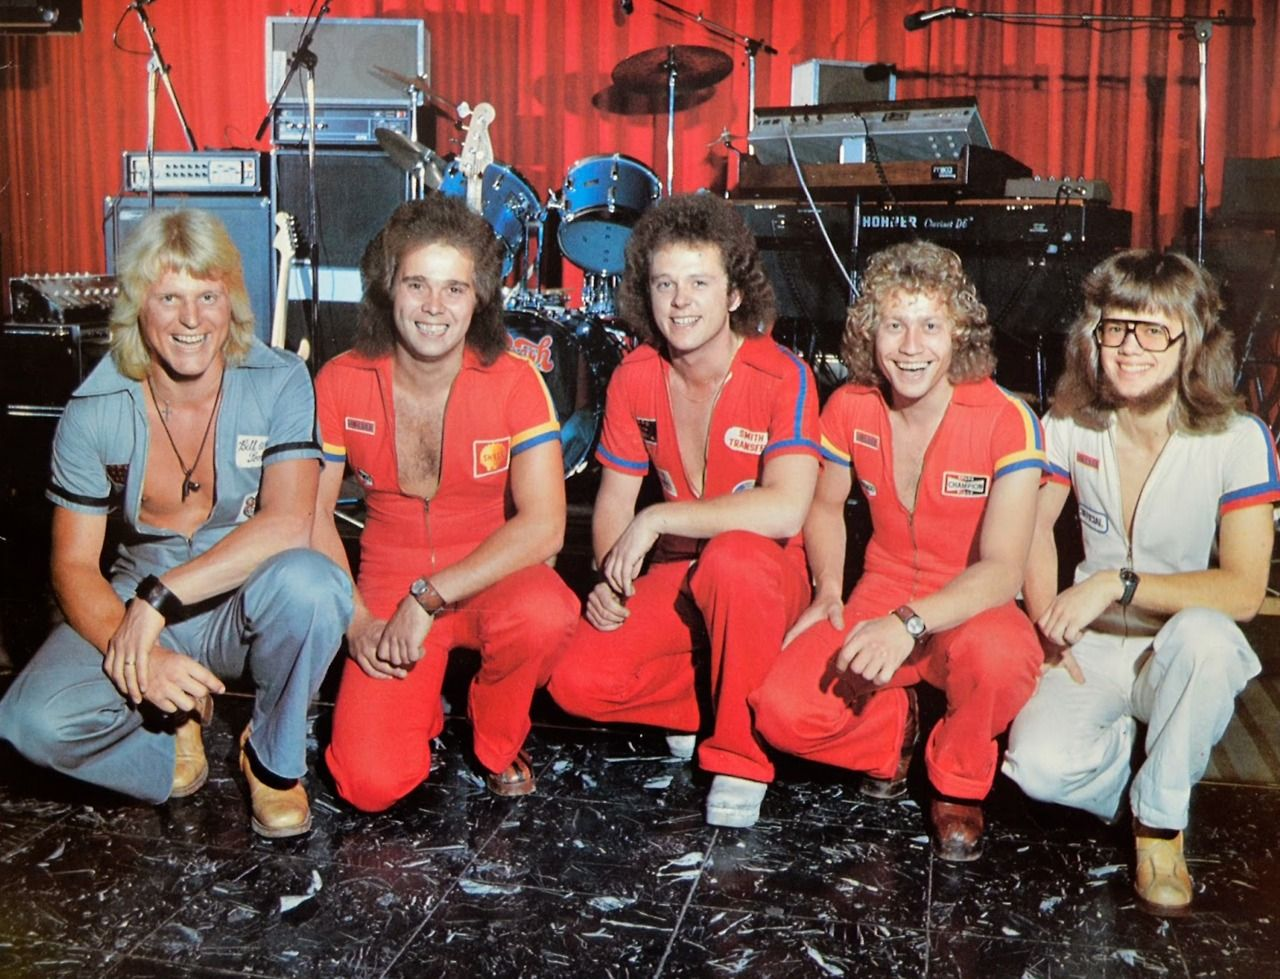 Dansband, 1976. (Please check out haircut on your right).  Illya, Darling